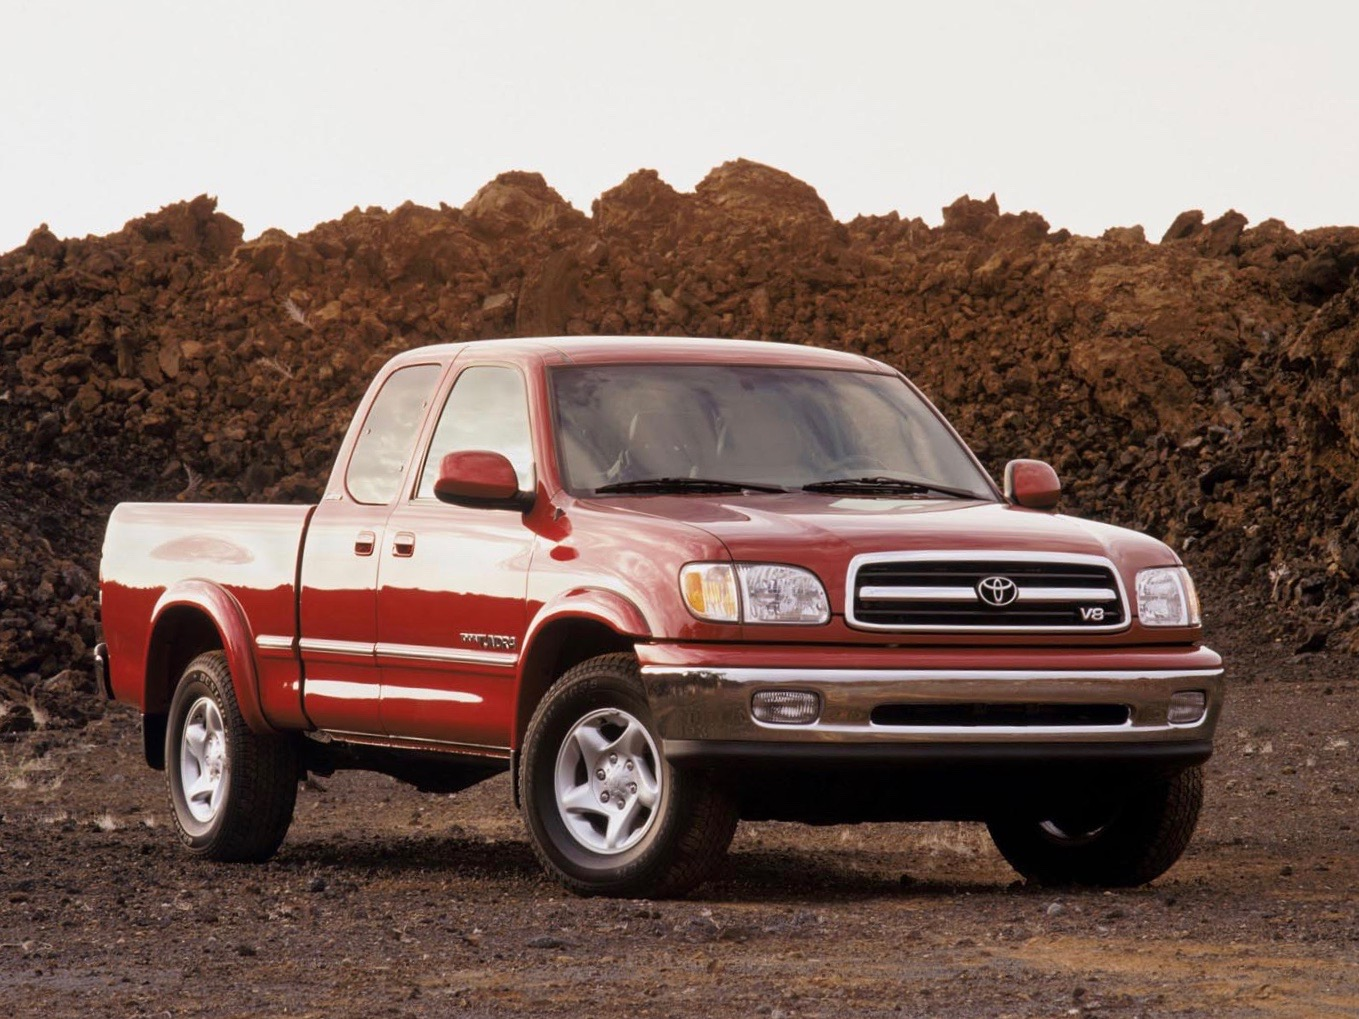 Toyota Tundra Reviews | CARFAX Vehicle Research